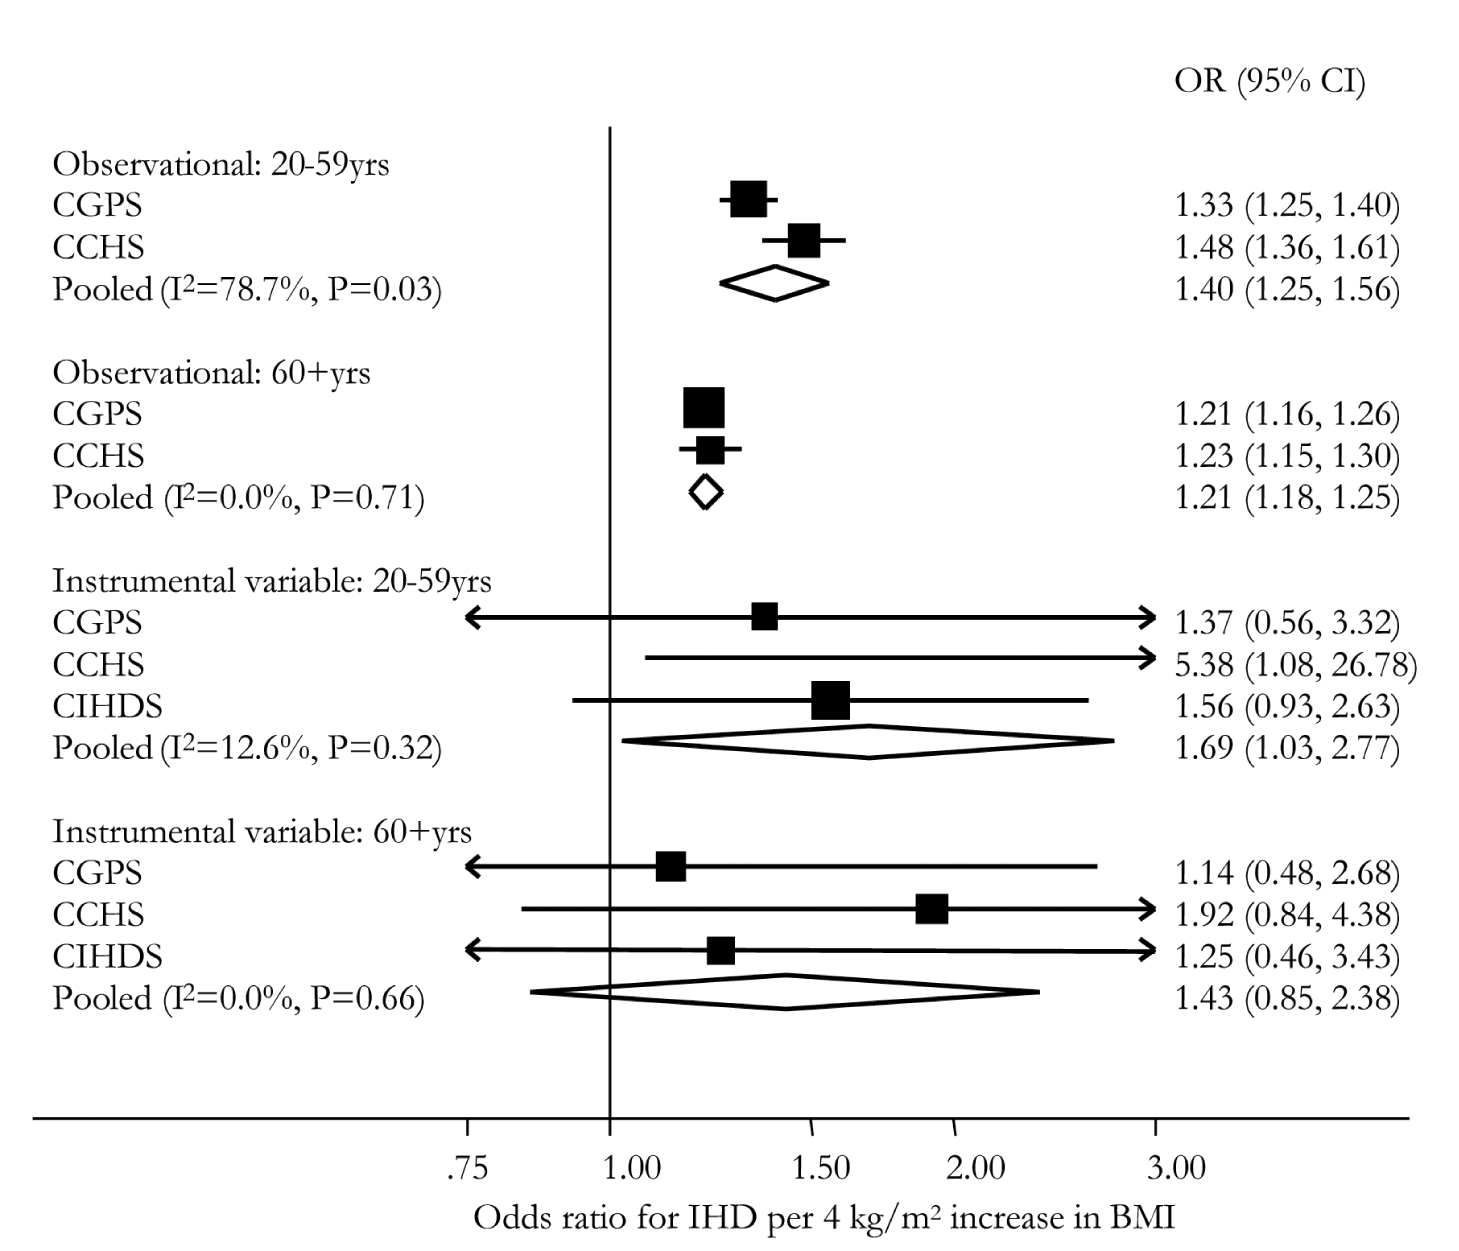 Meta-analysis forest plots of observational and instrumental variable estimates of the relationship between IHD and BMI stratified by age group.